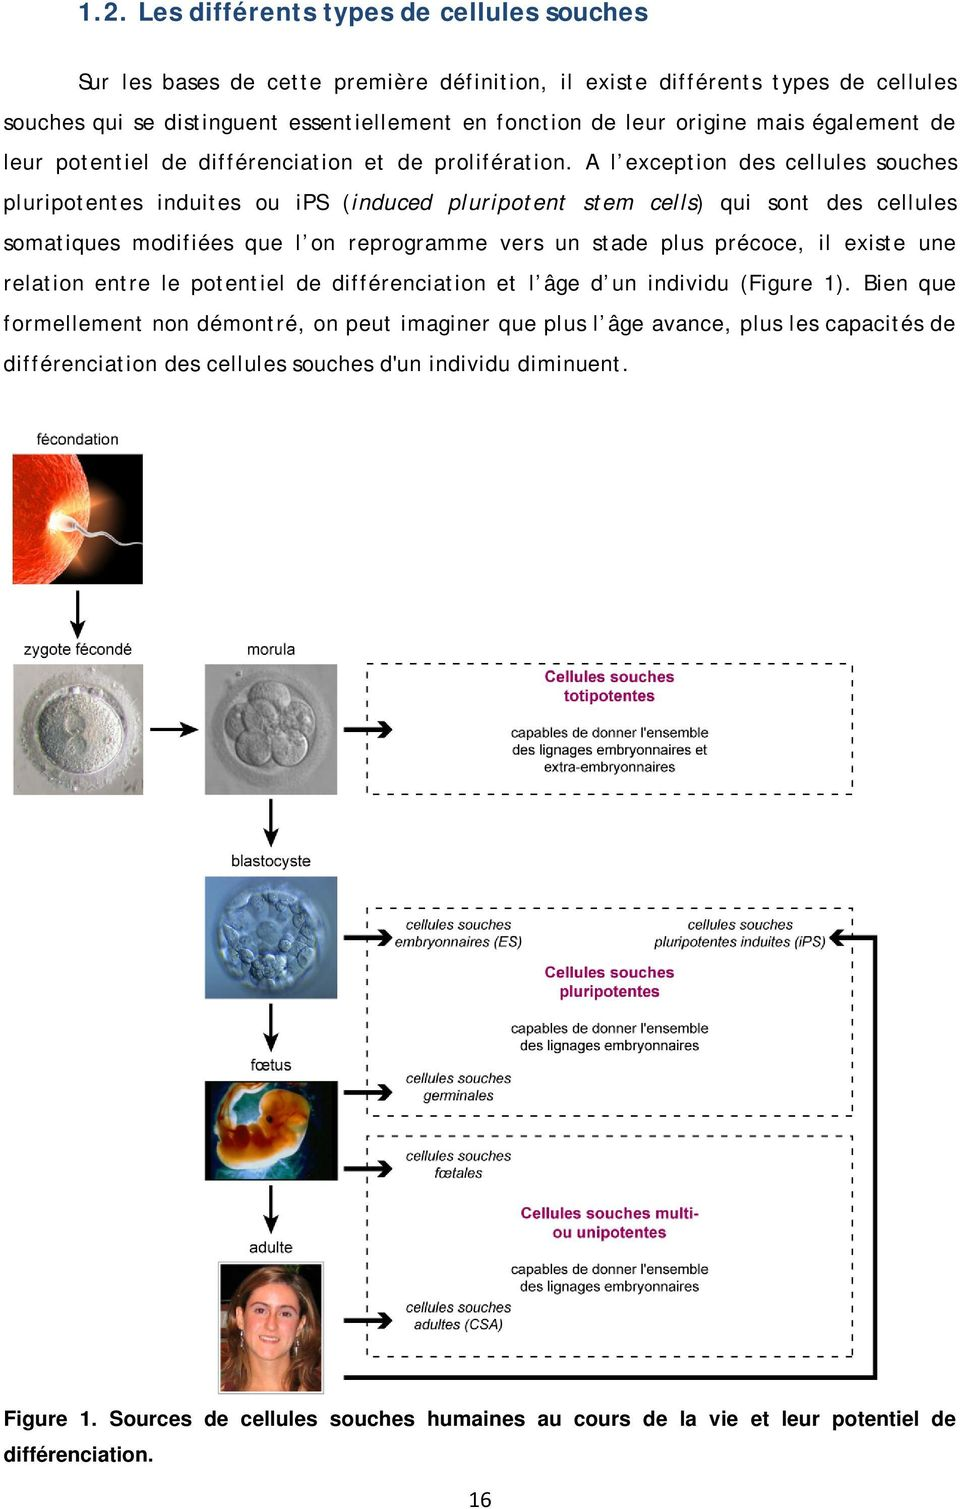 A l exception des cellules souches pluripotentes induites ou ips (induced pluripotent stem cells) qui sont des cellules somatiques modifiées que l on reprogramme vers un stade plus précoce, il existe